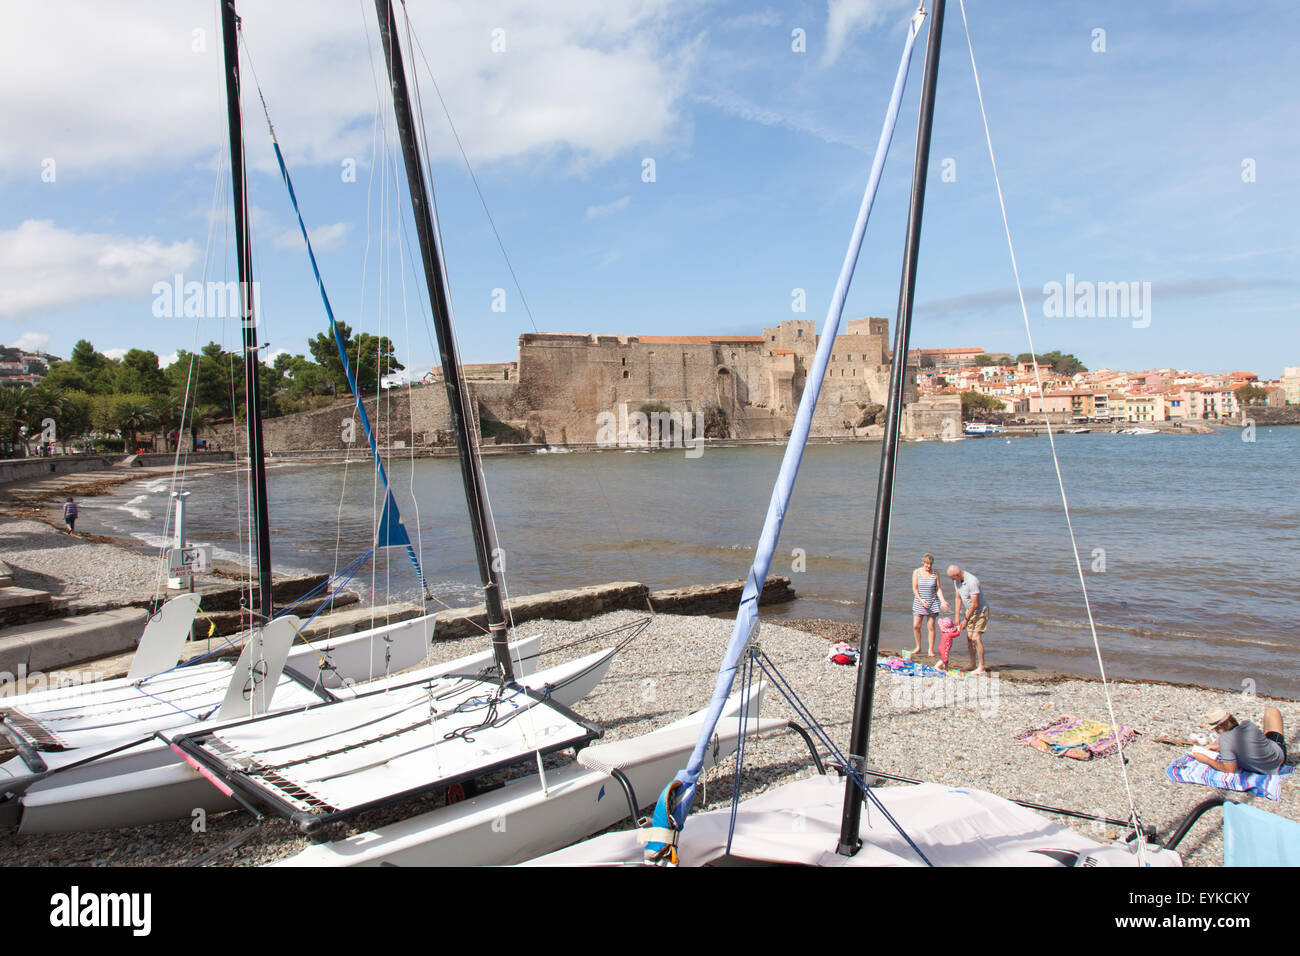 The bay and Royal Chateau of Colliour in Southern France. Stock Photo